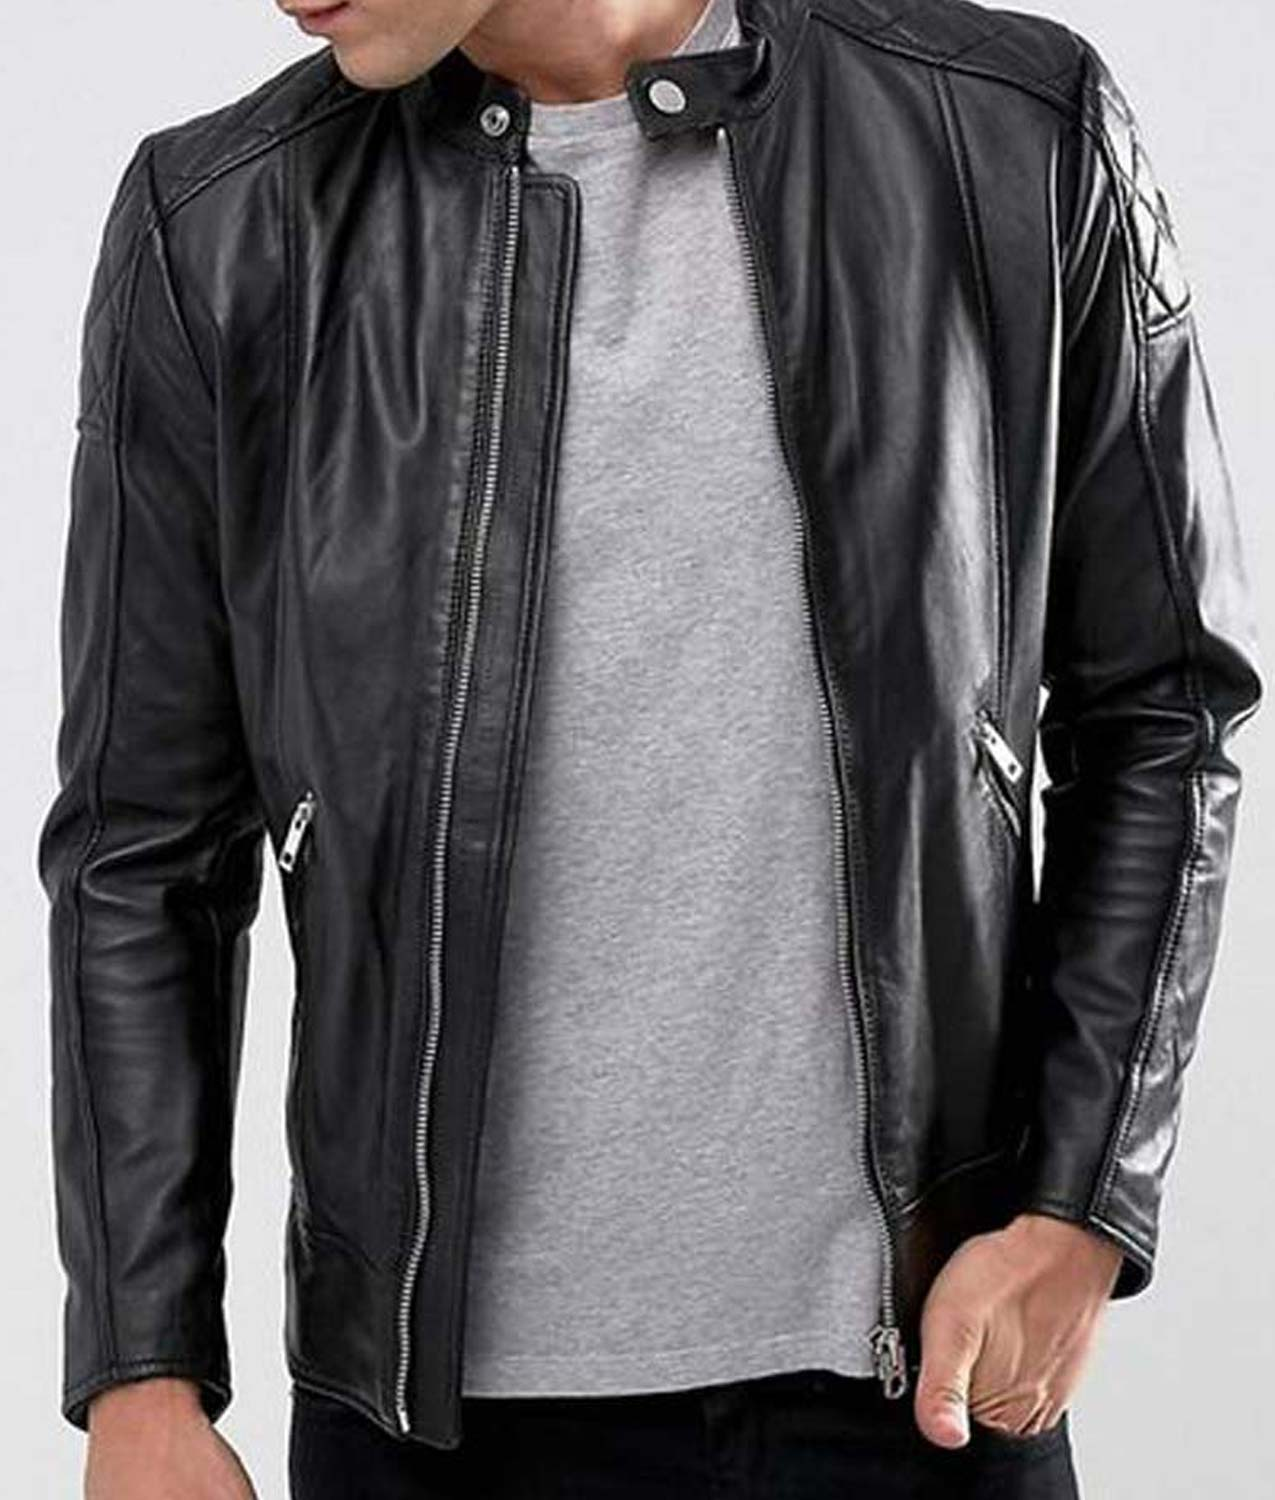 Mens Cafe Racer Style Black Leather Jacket Cafe Racer Jacket